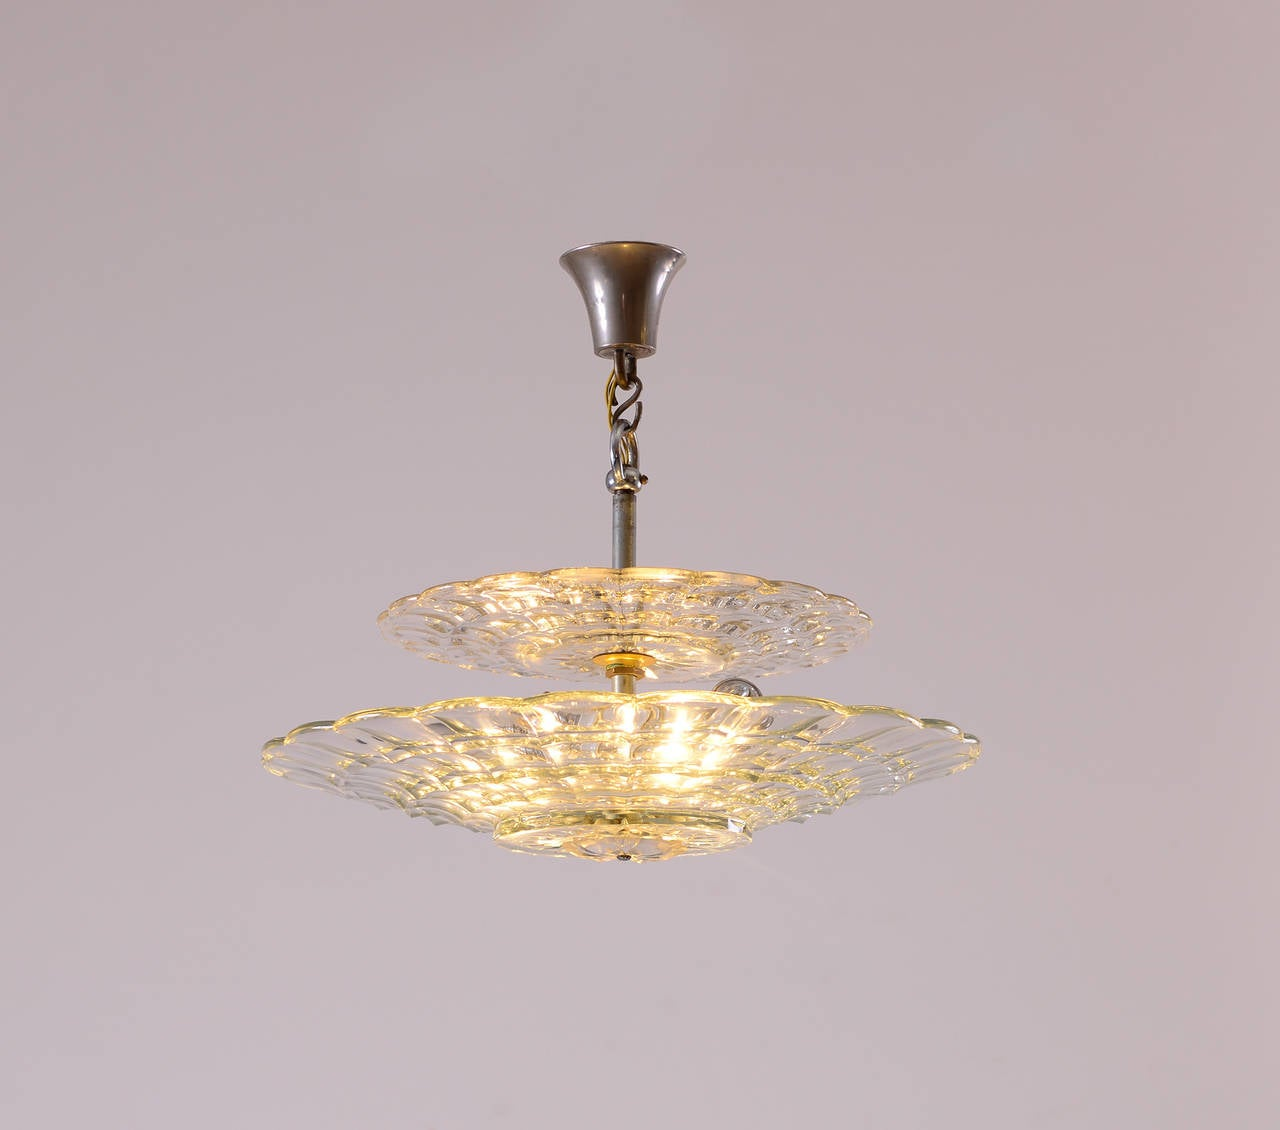 Unique Lobmeyr Crystal Glass Chandelier at 1stdibs